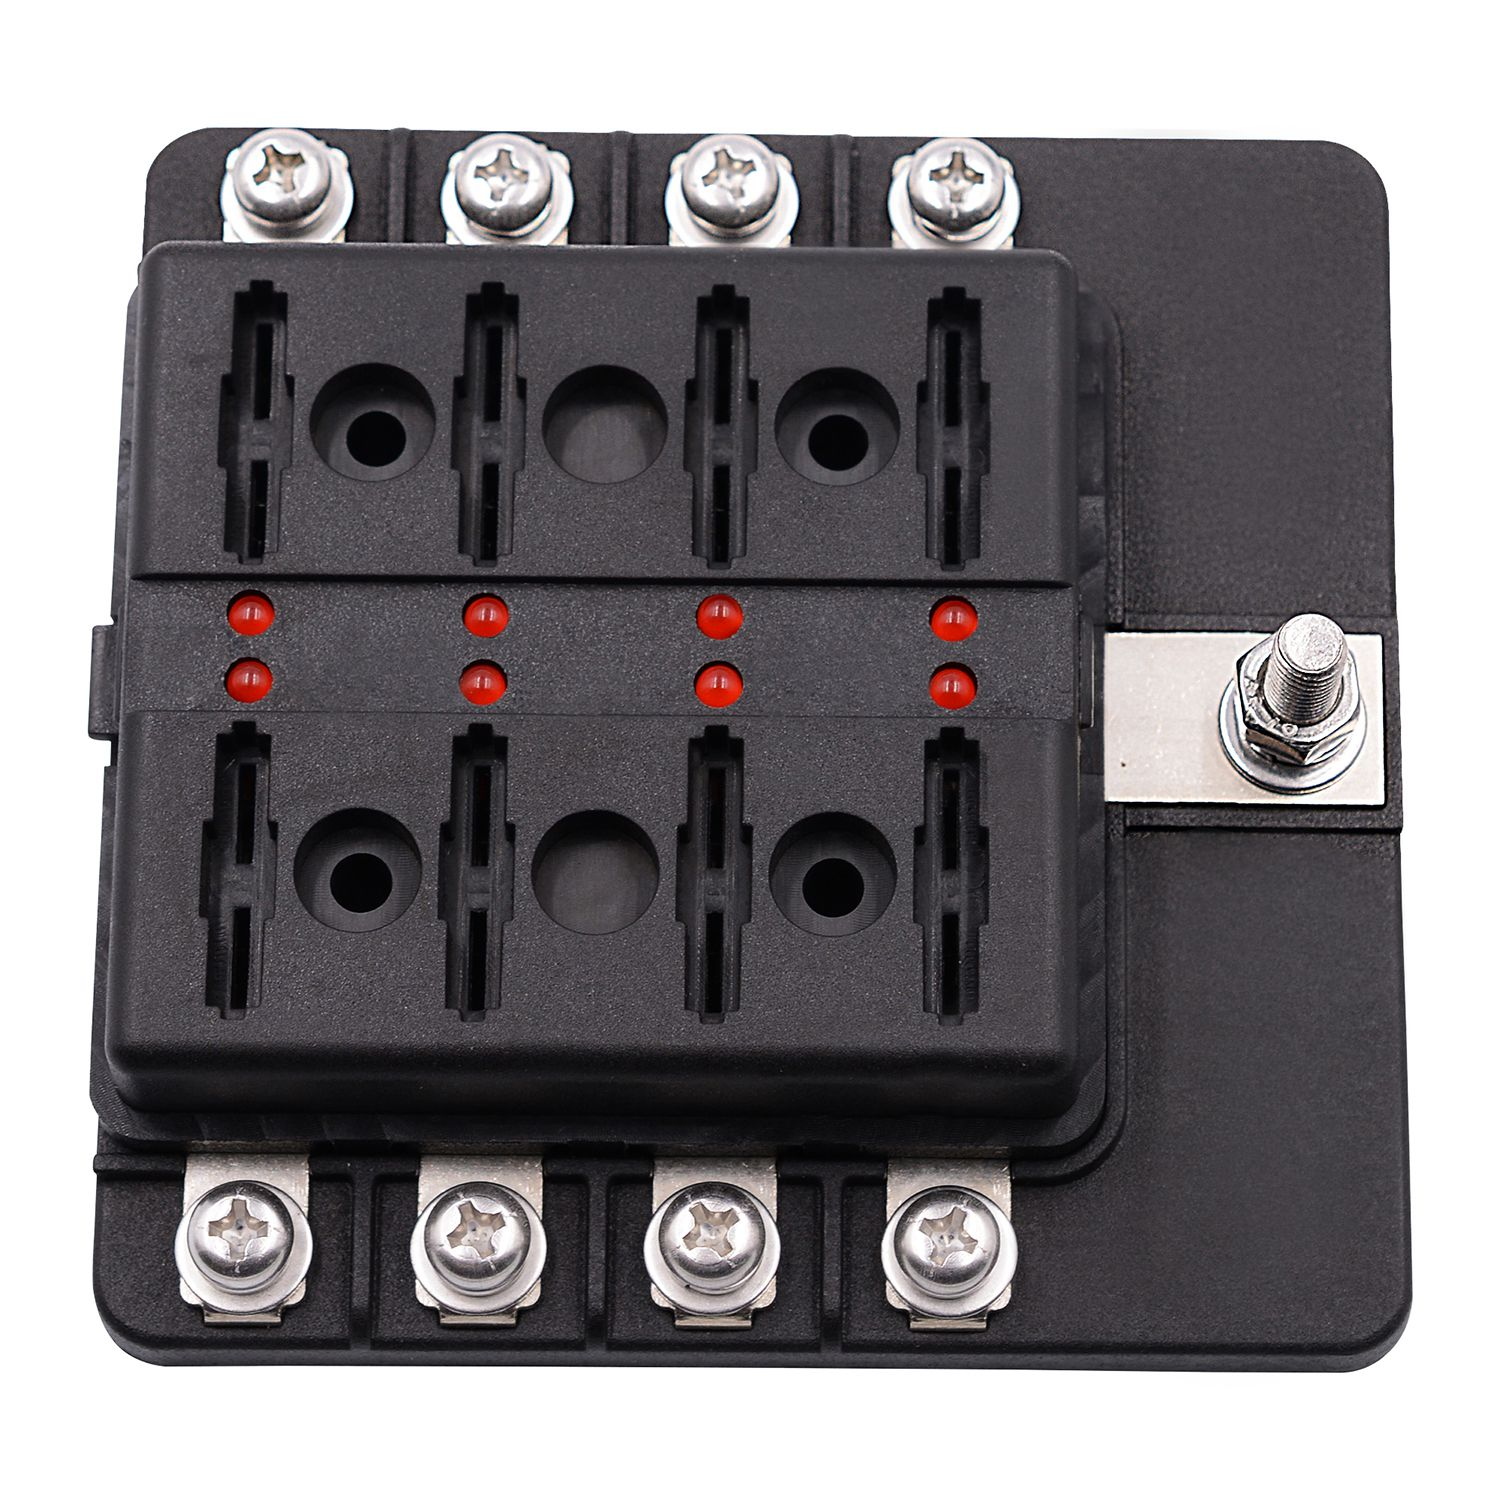 Renault Megane Fuse Box Wet Diagram Schematics 10 Way Circuit Blade Block Holder With Led Warning Light Captur